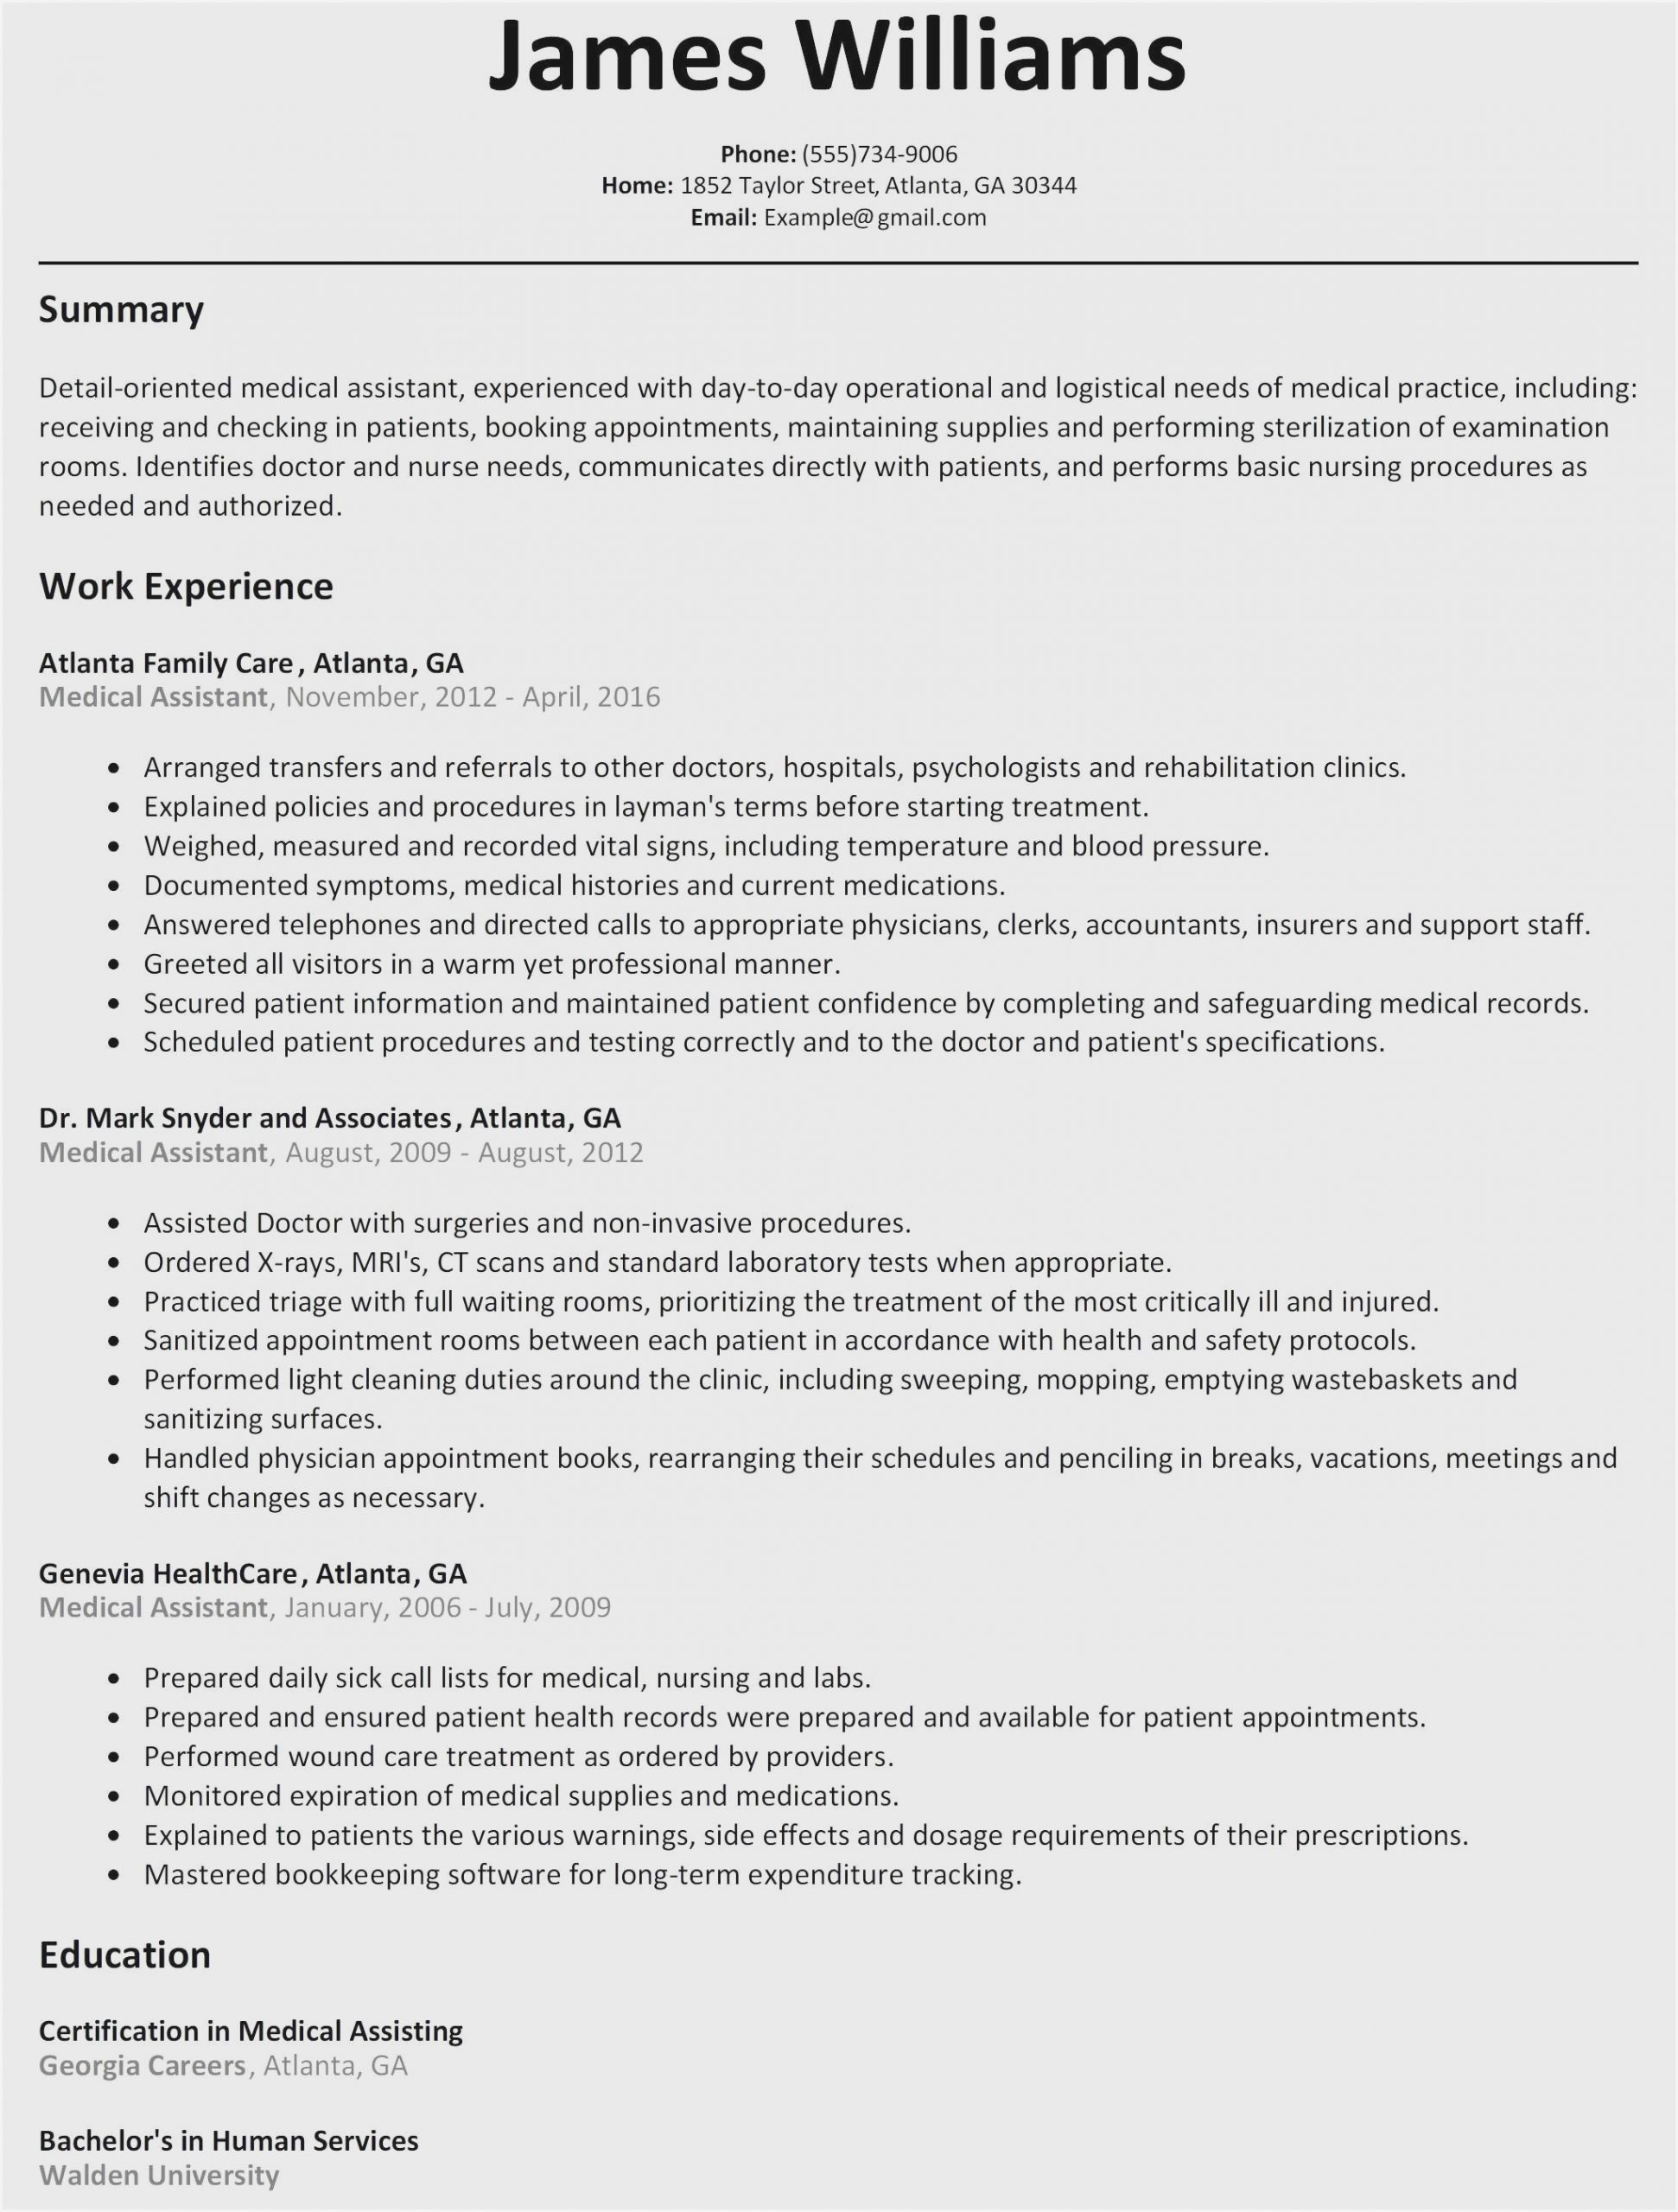 accountant resume sample free accounting summary scaled layout for college student middle Resume Sample Accounting Resume Summary